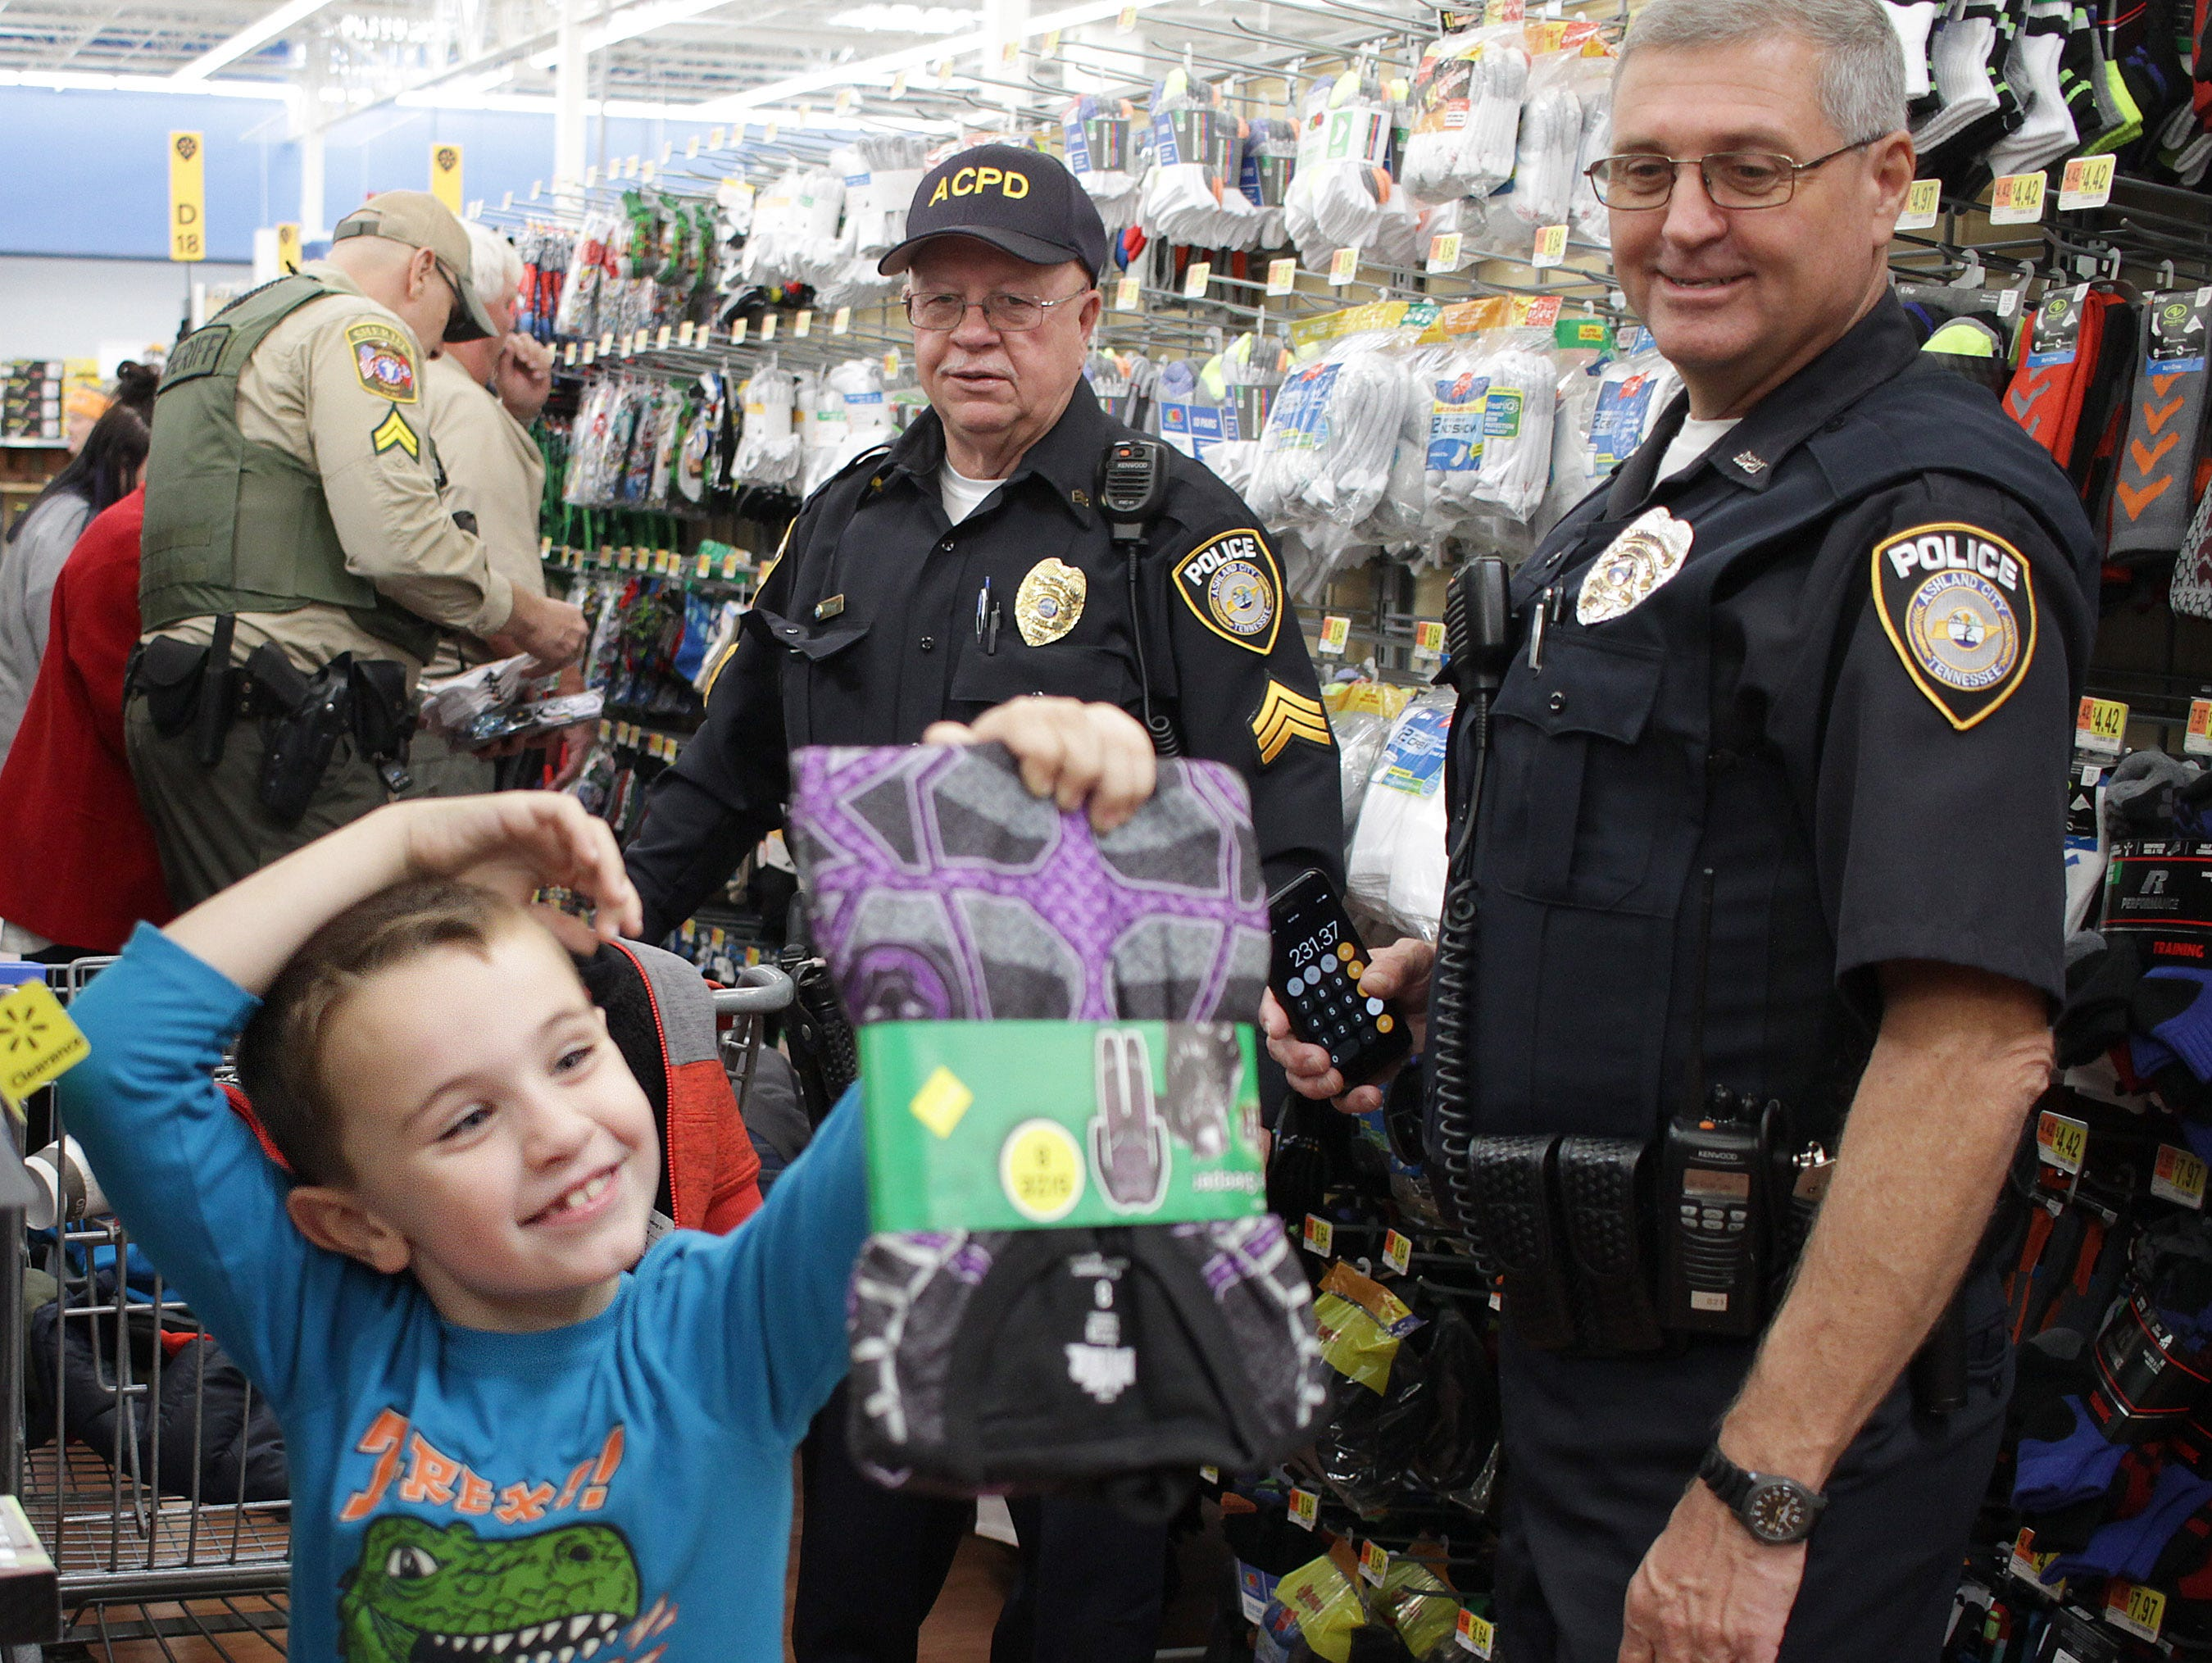 Johnathon Spann (6) finds some cool underwear he likes with Officer David Becker during Shop with a Cop in Askland City on Saturday, December 15, 2018.